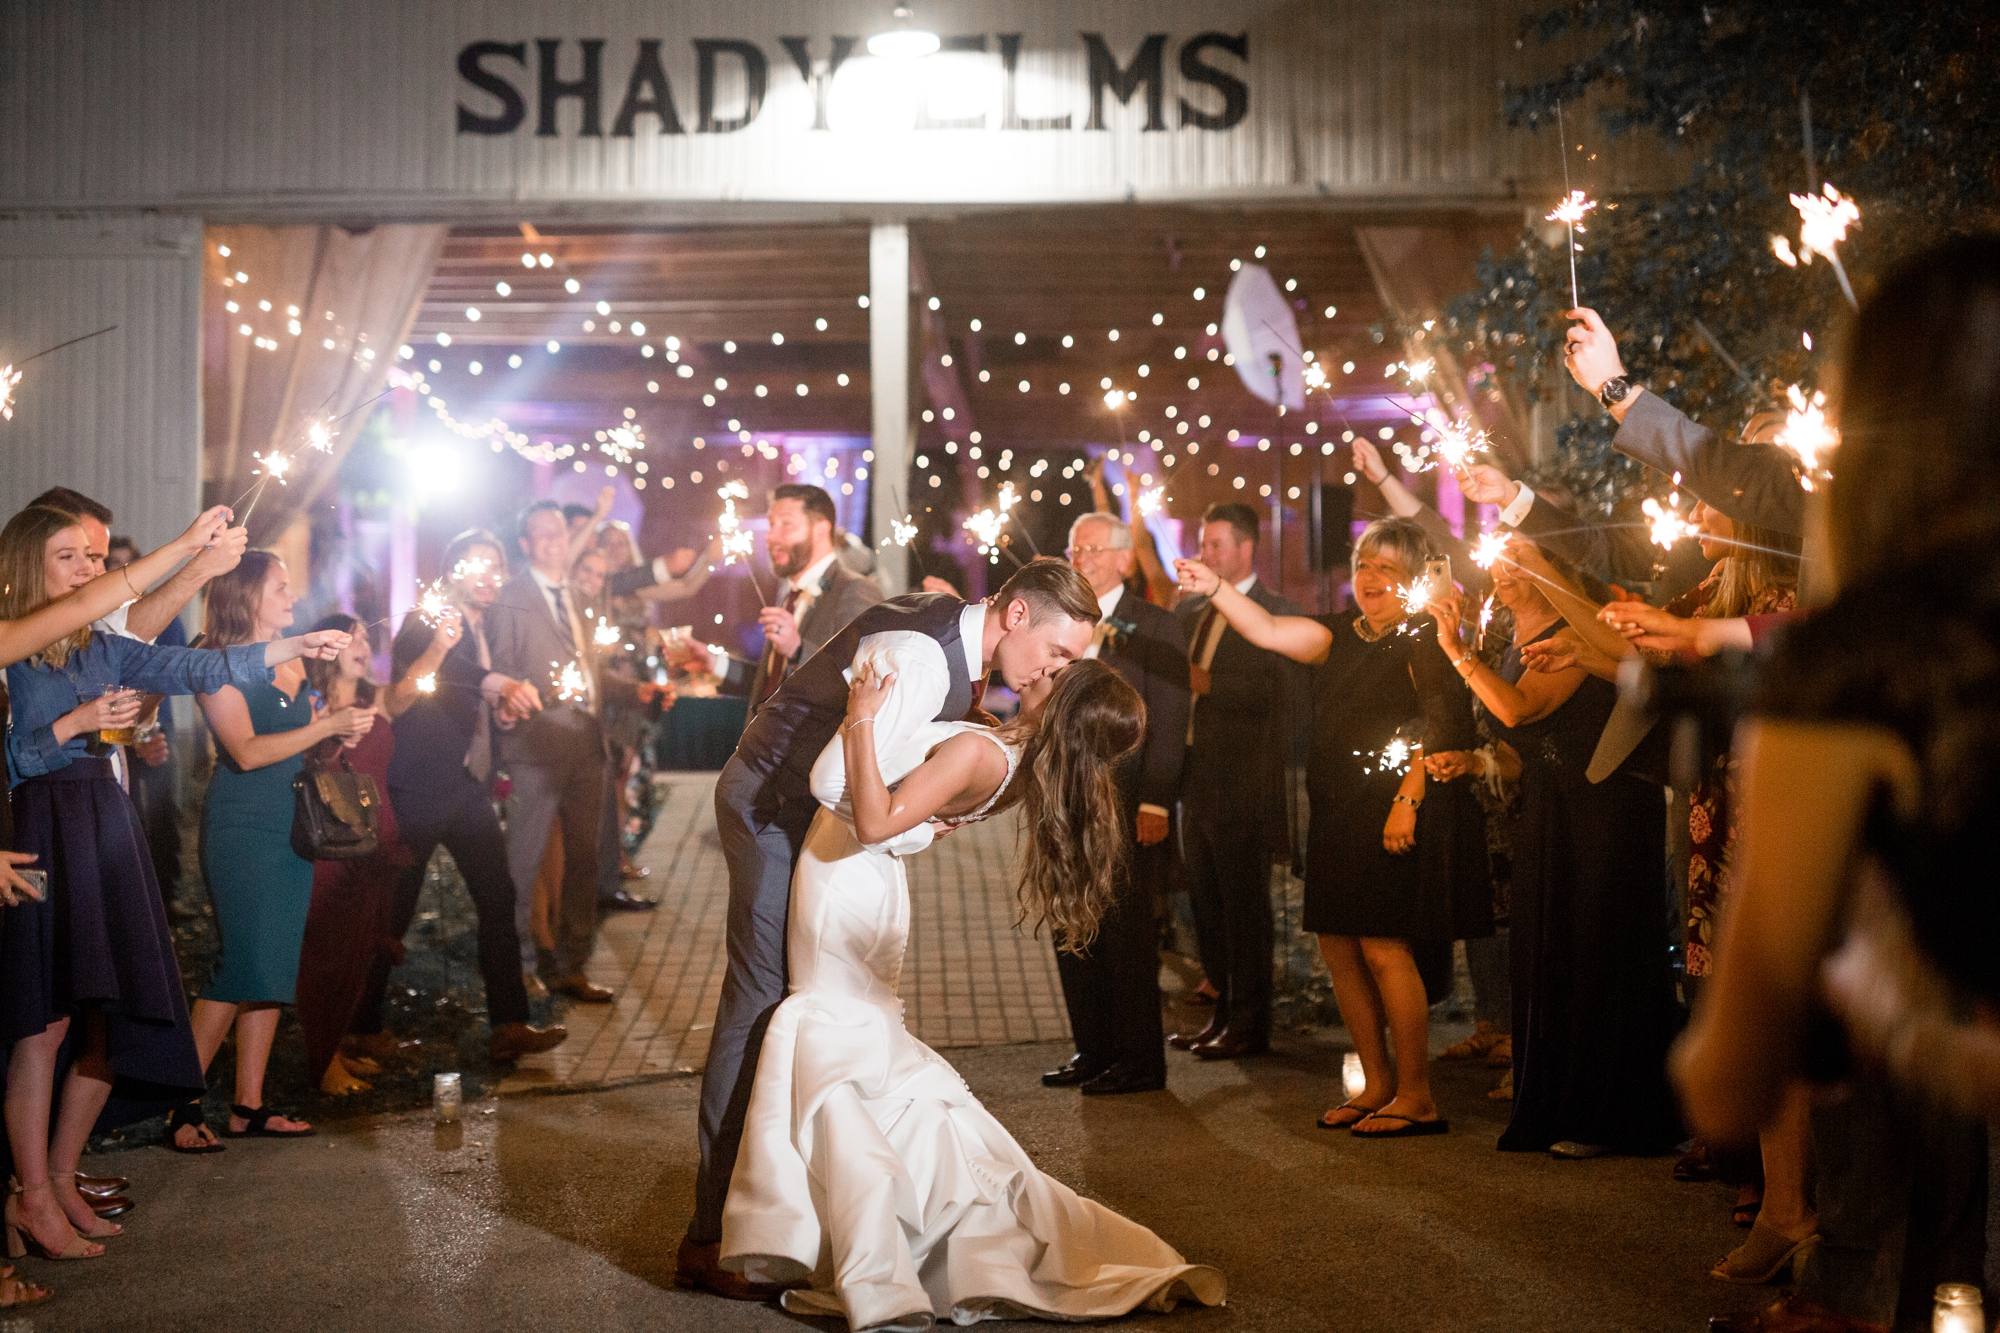 pittsburgh wedding venues, shady elms farm wedding pictures, shady elms farm wedding photos, shady elms farm hickory